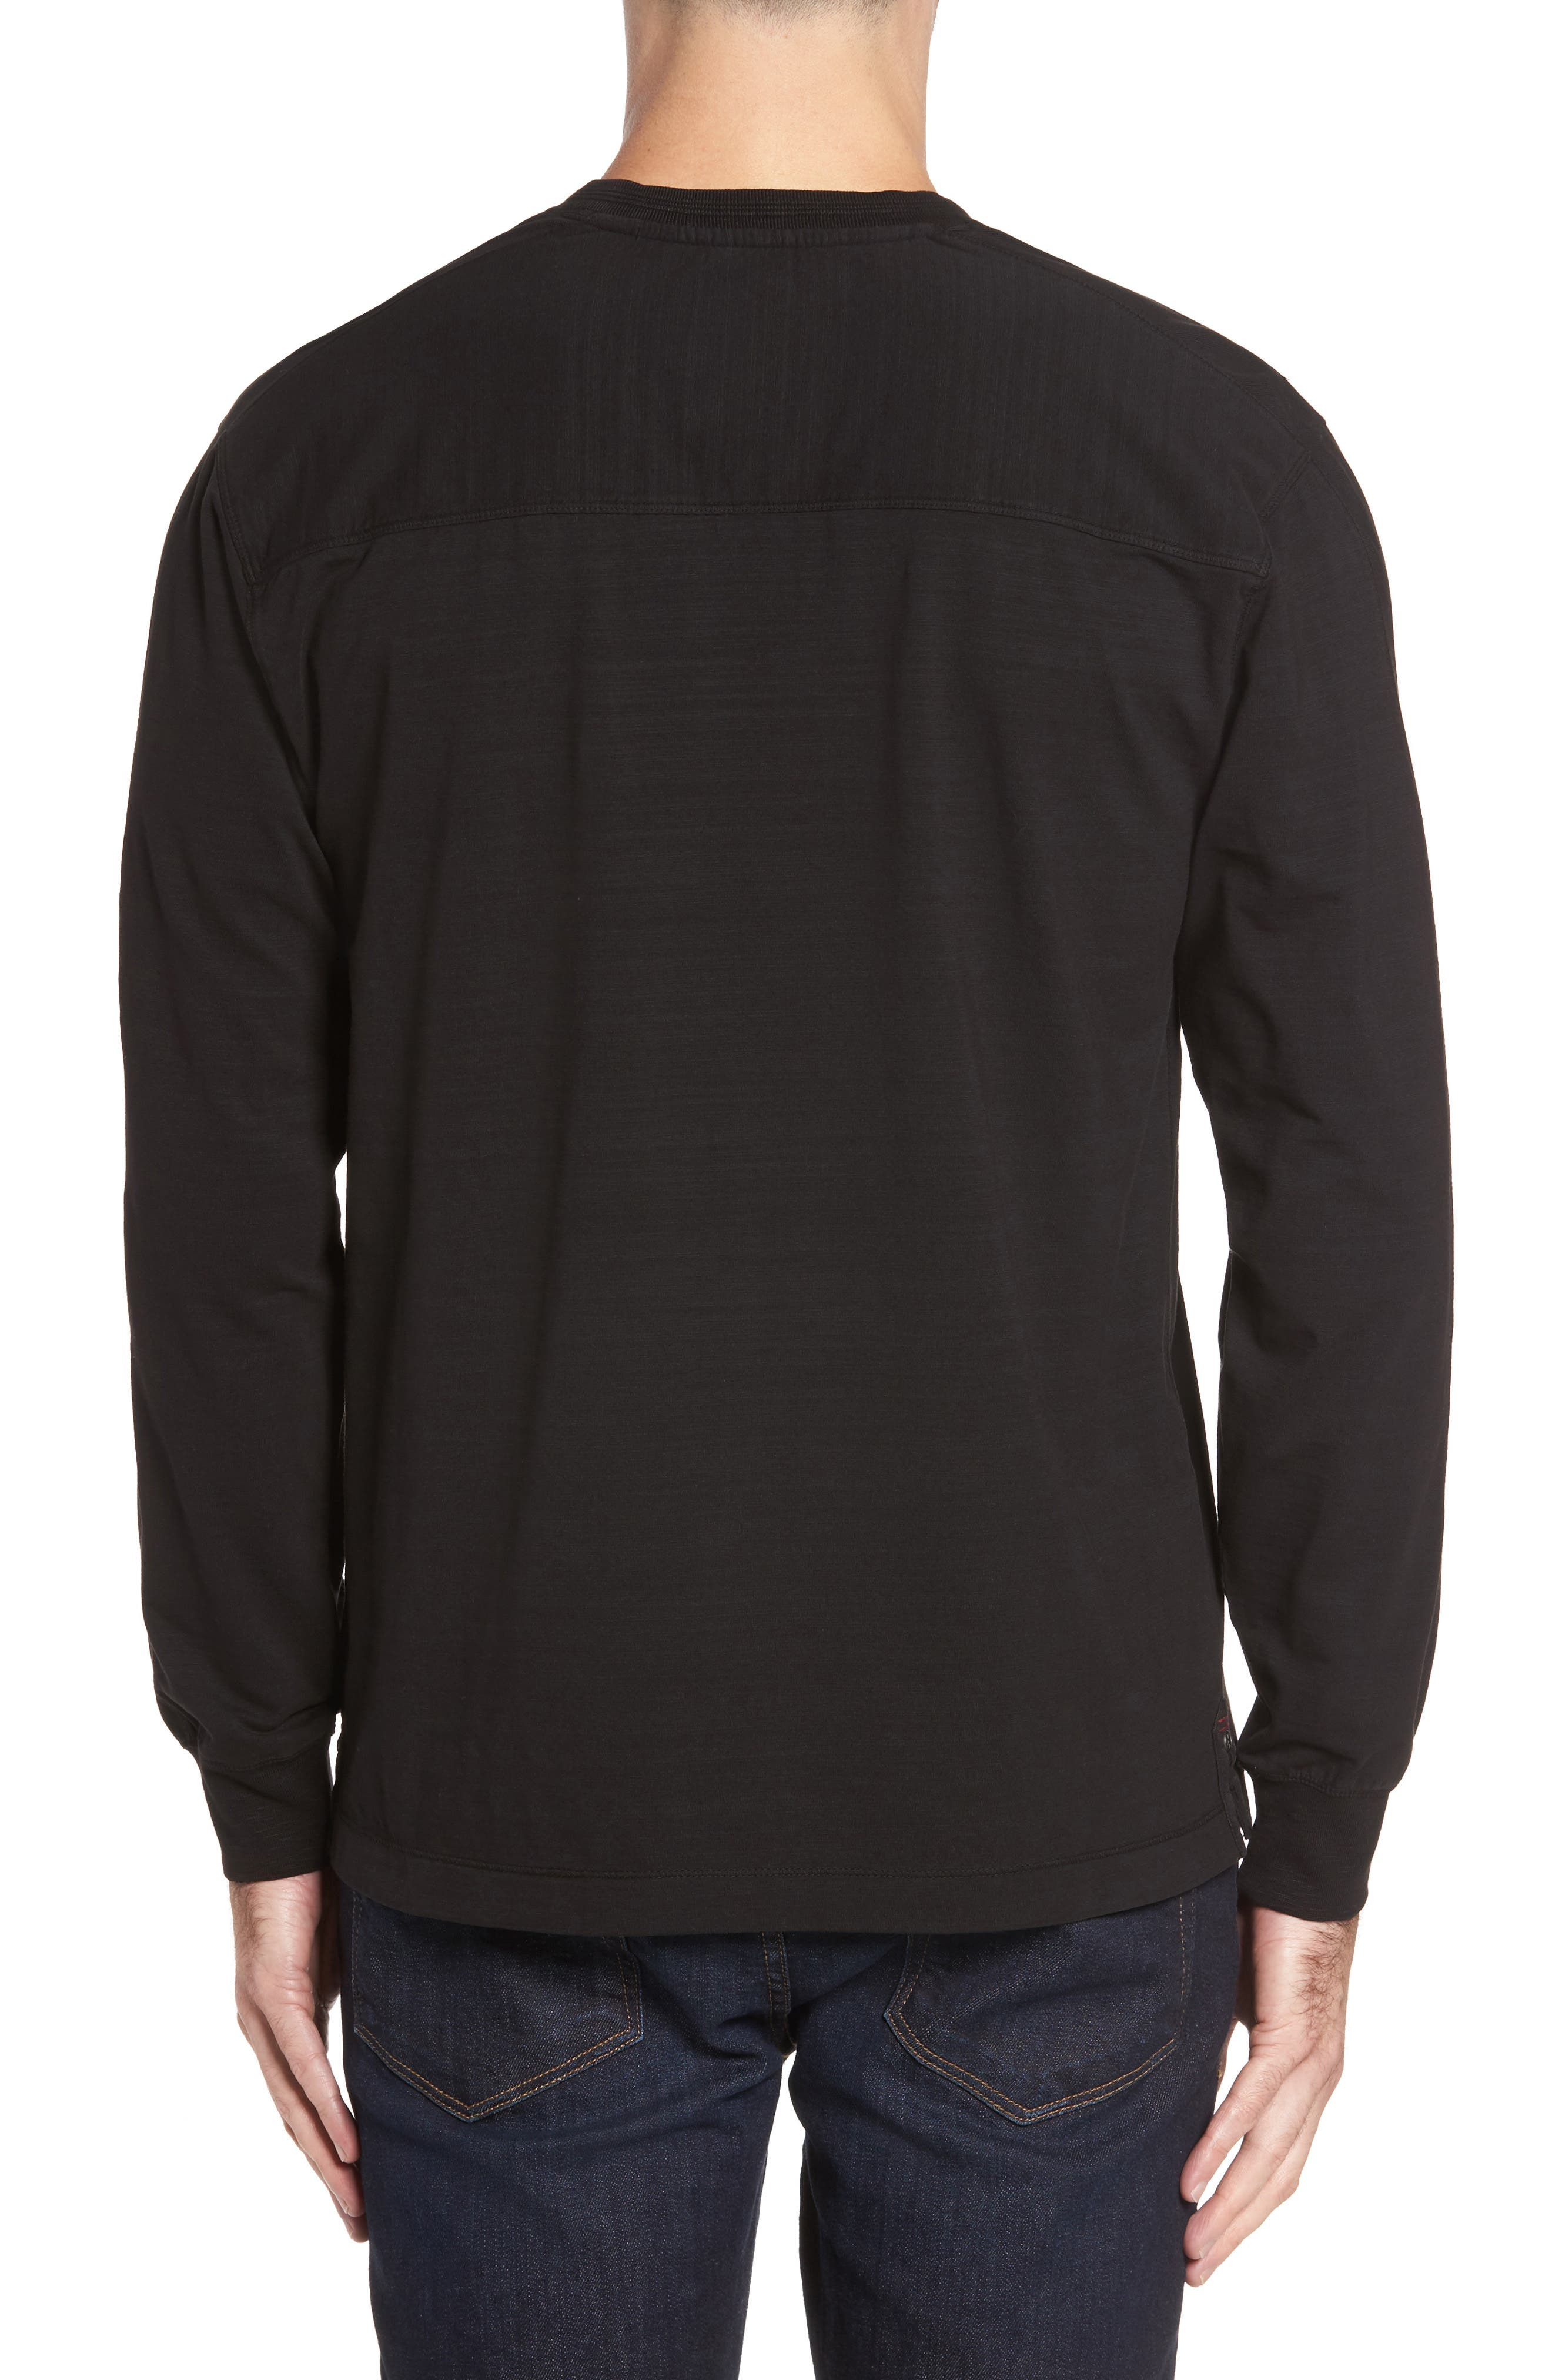 Vinn Slubbed Long Sleeve V-Neck T-Shirt,                             Alternate thumbnail 2, color,                             001